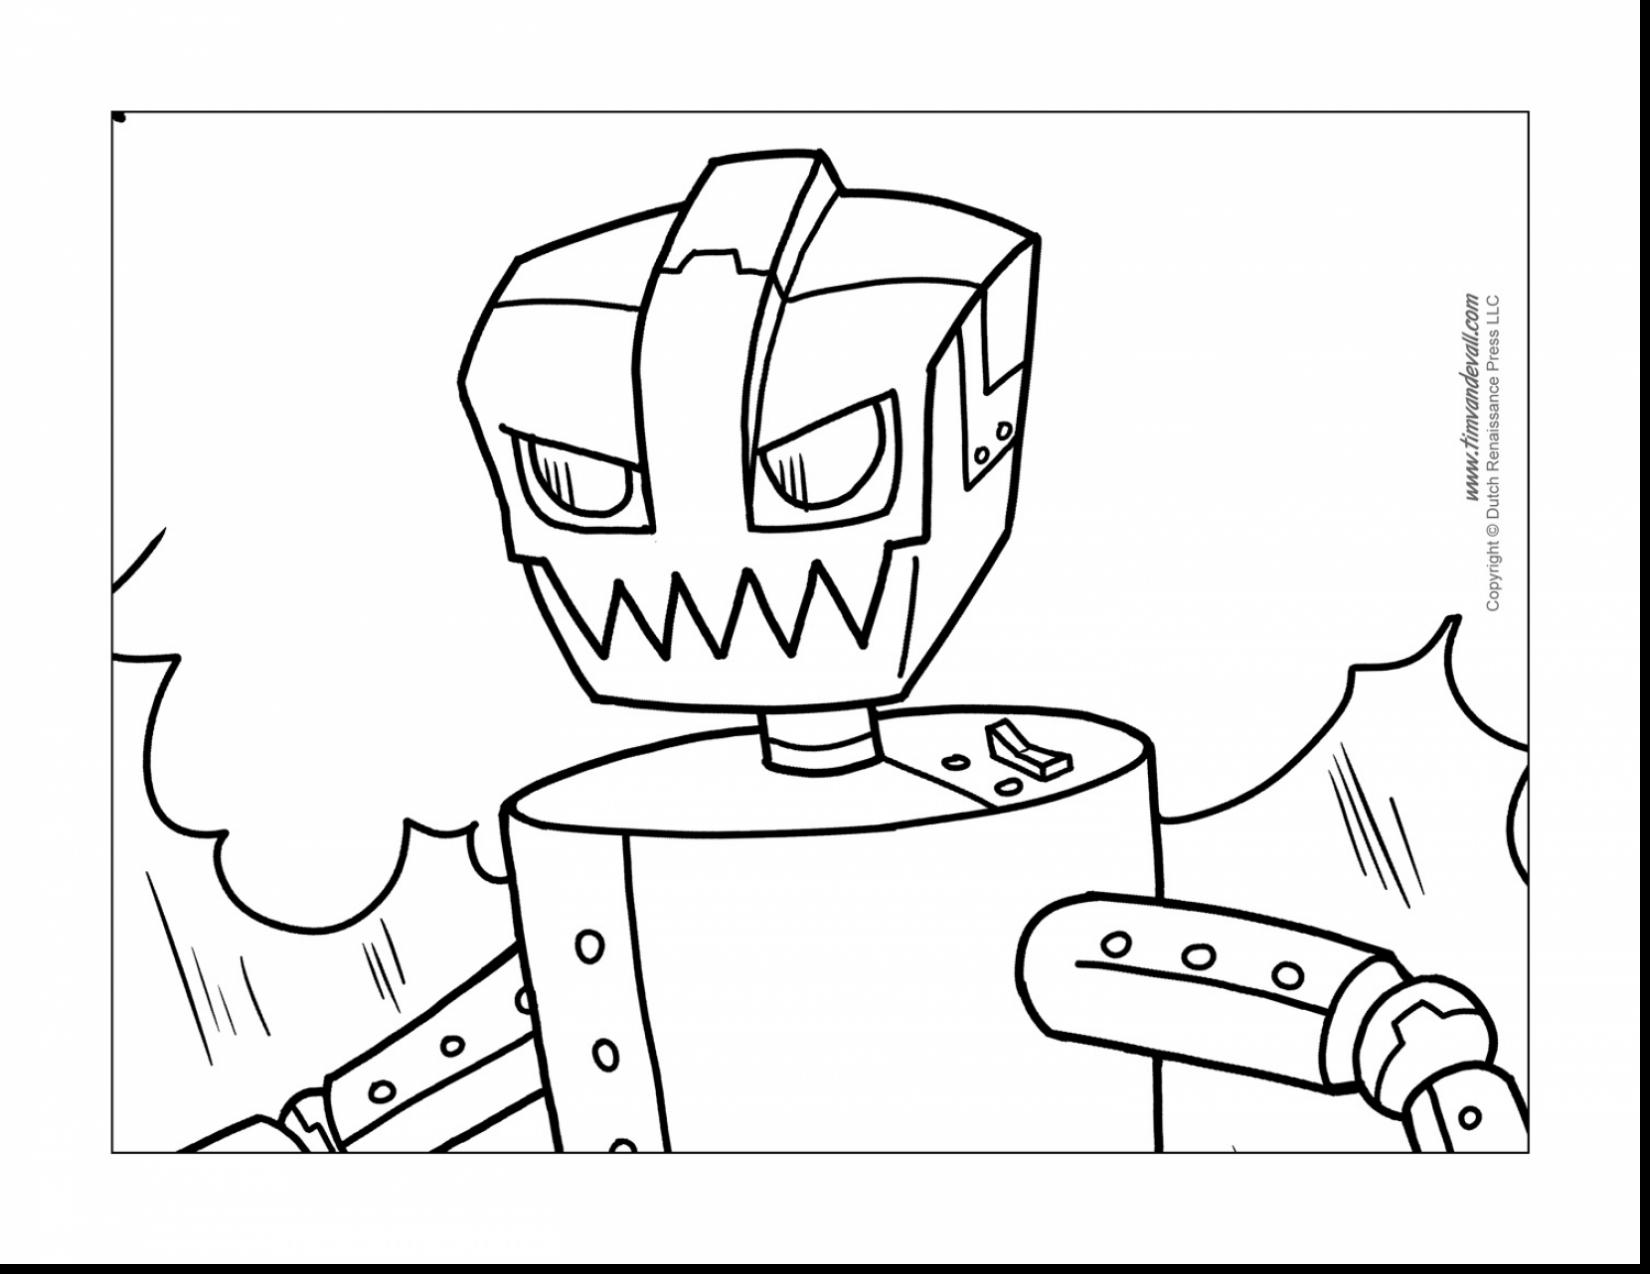 1650x1274 Wall E Coloring Pages Hellokids Free Printable General Momjunction